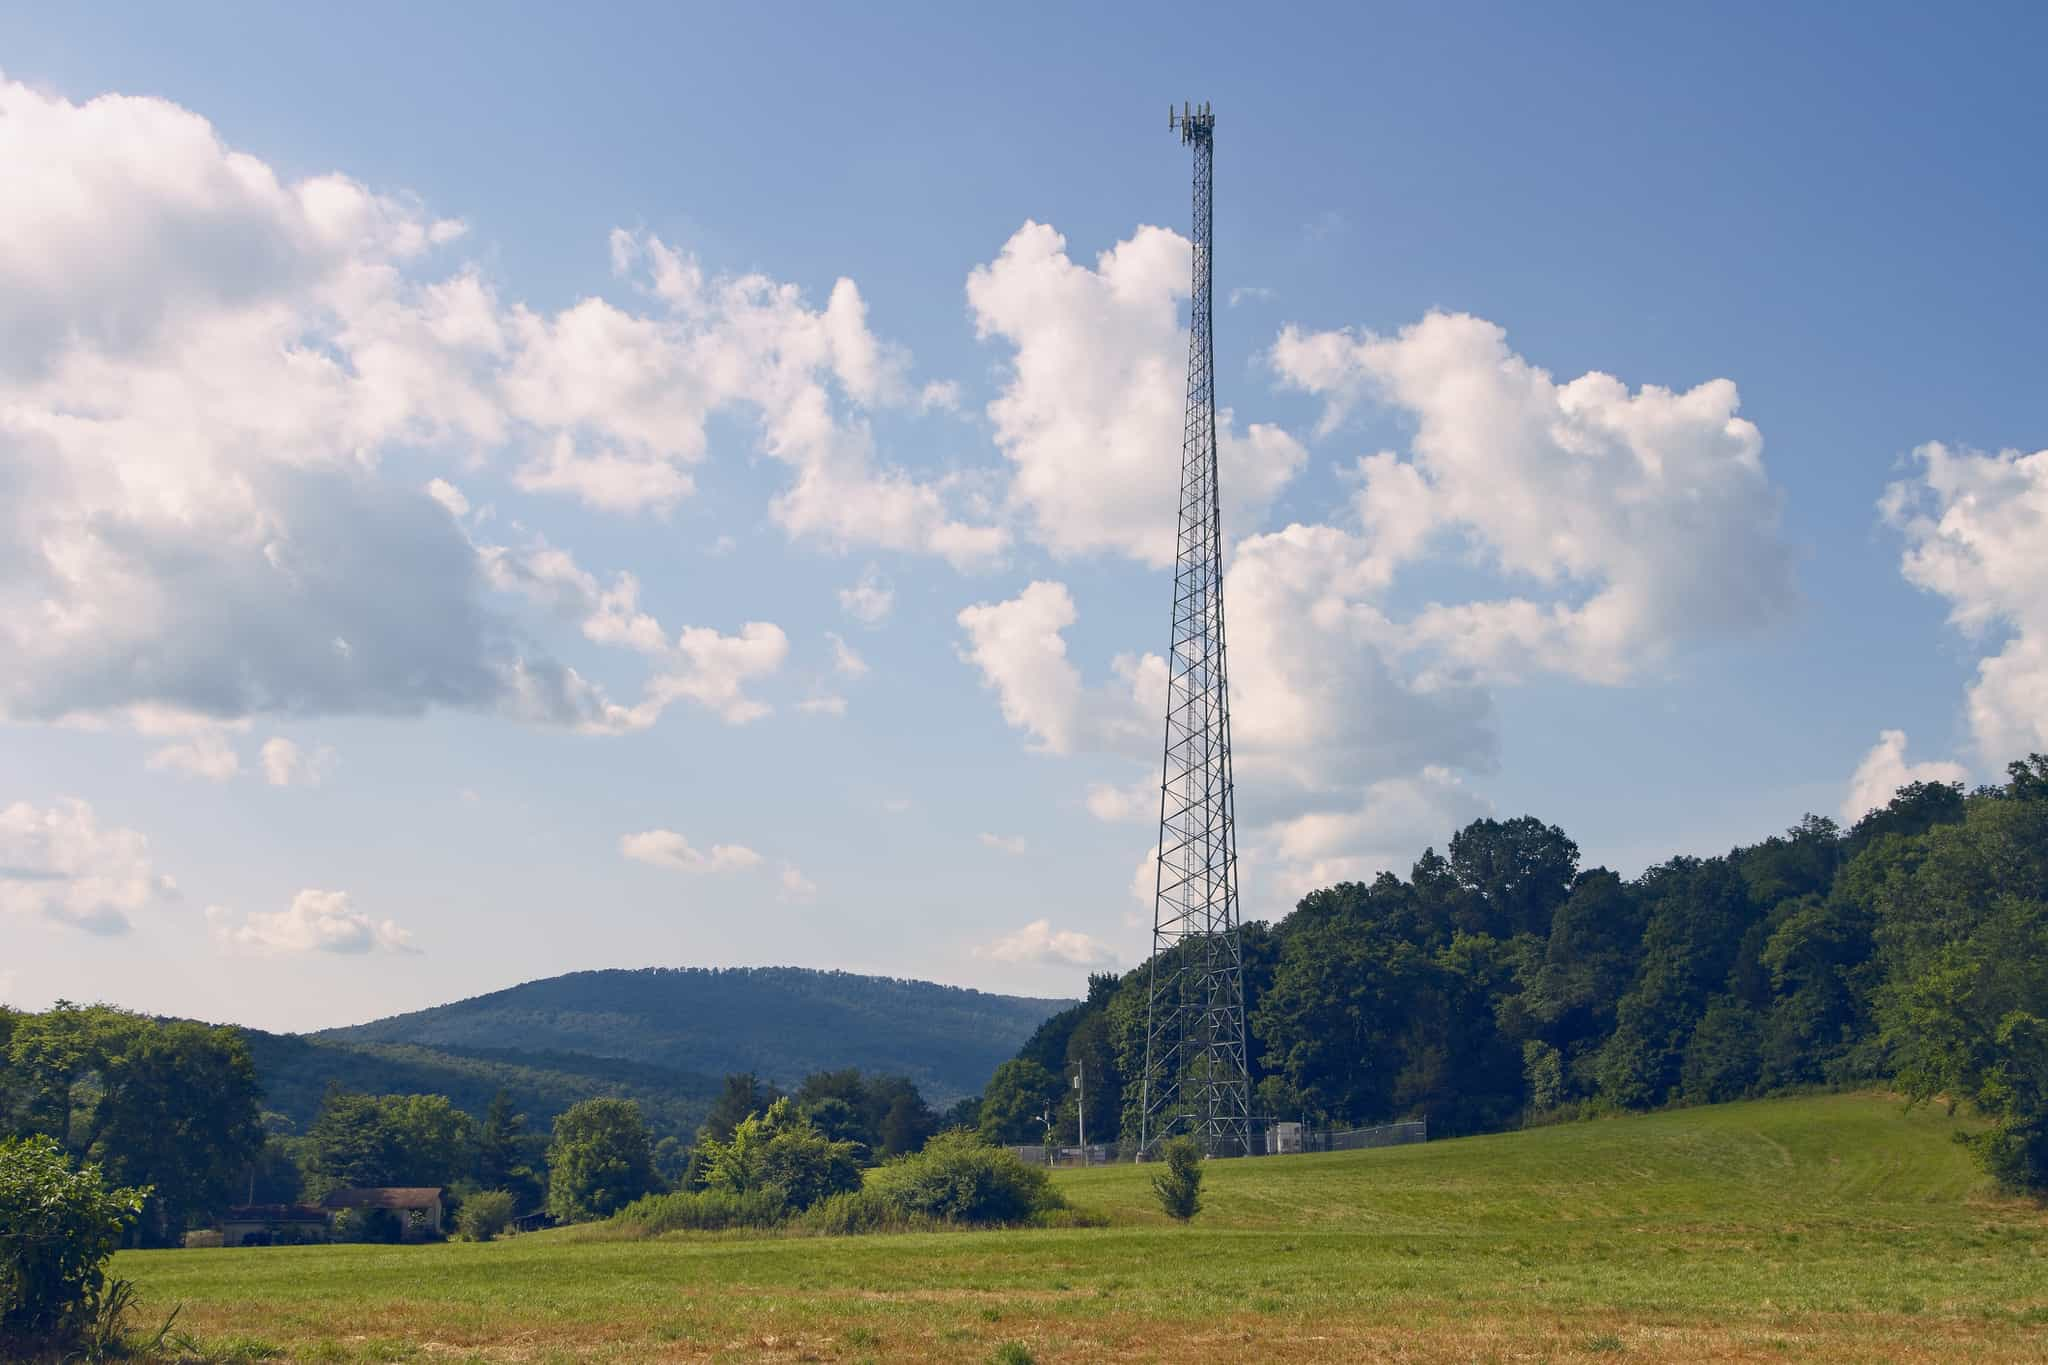 Communication tower standing tall in the country side of Alabama.